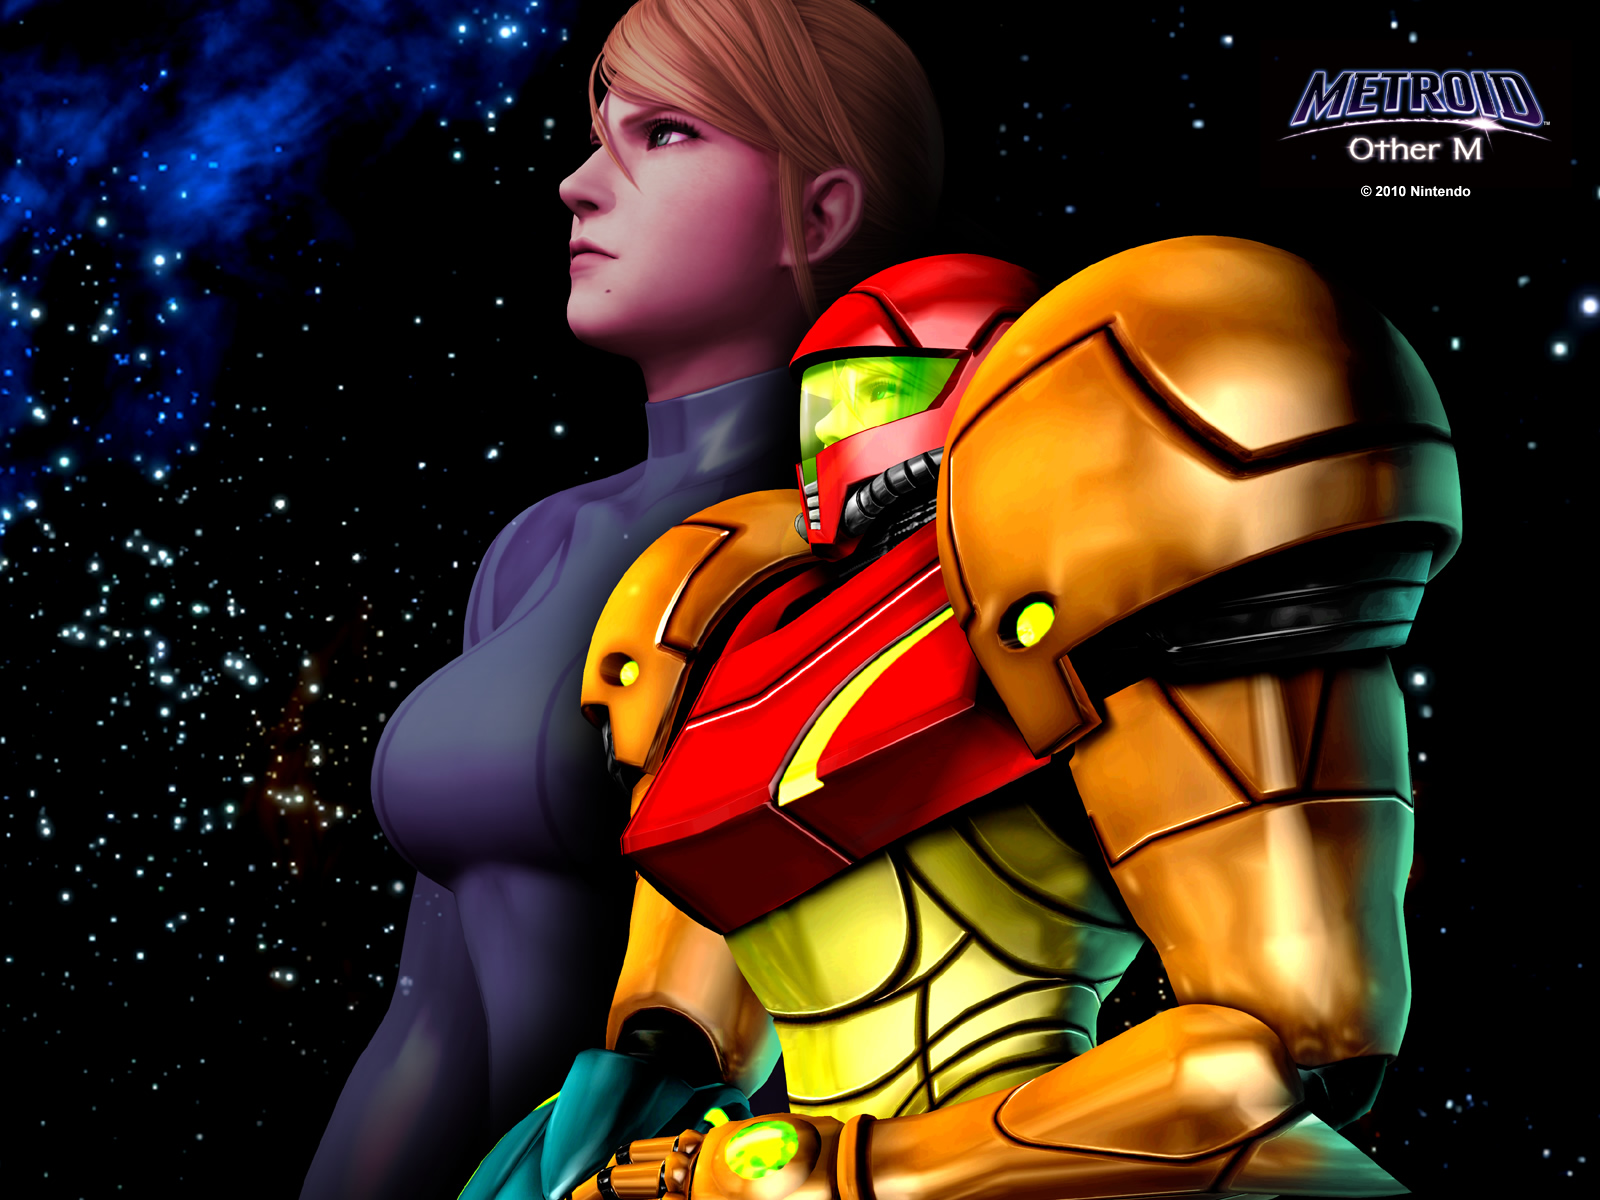 Wallpaper Metroid Other M Metroid Recon